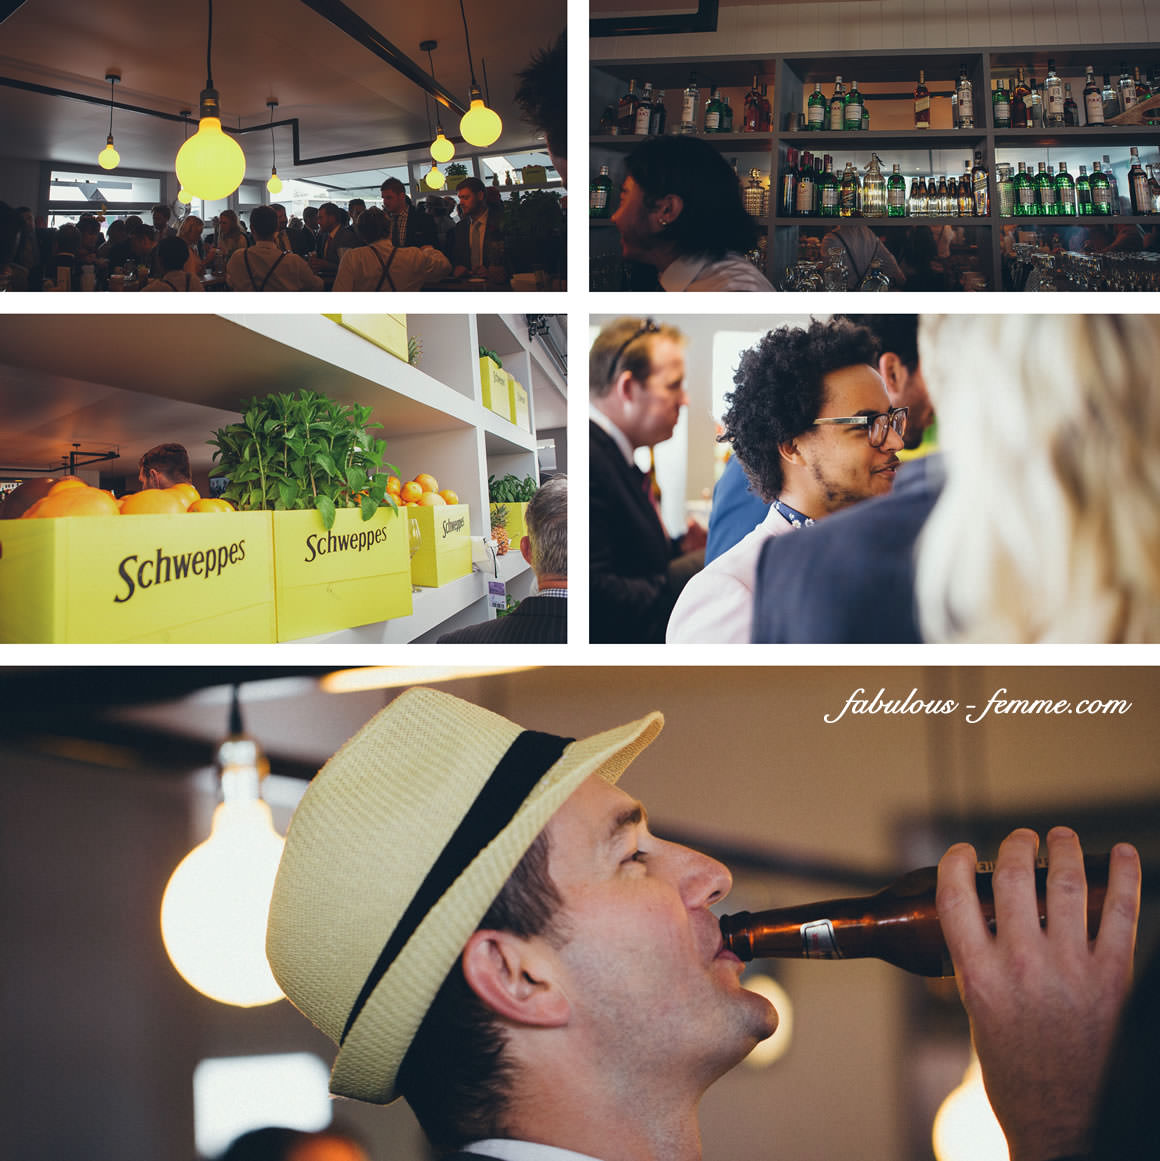 schweppes marquee at the melbourne cup - Melbourne Spring Racing Carnival